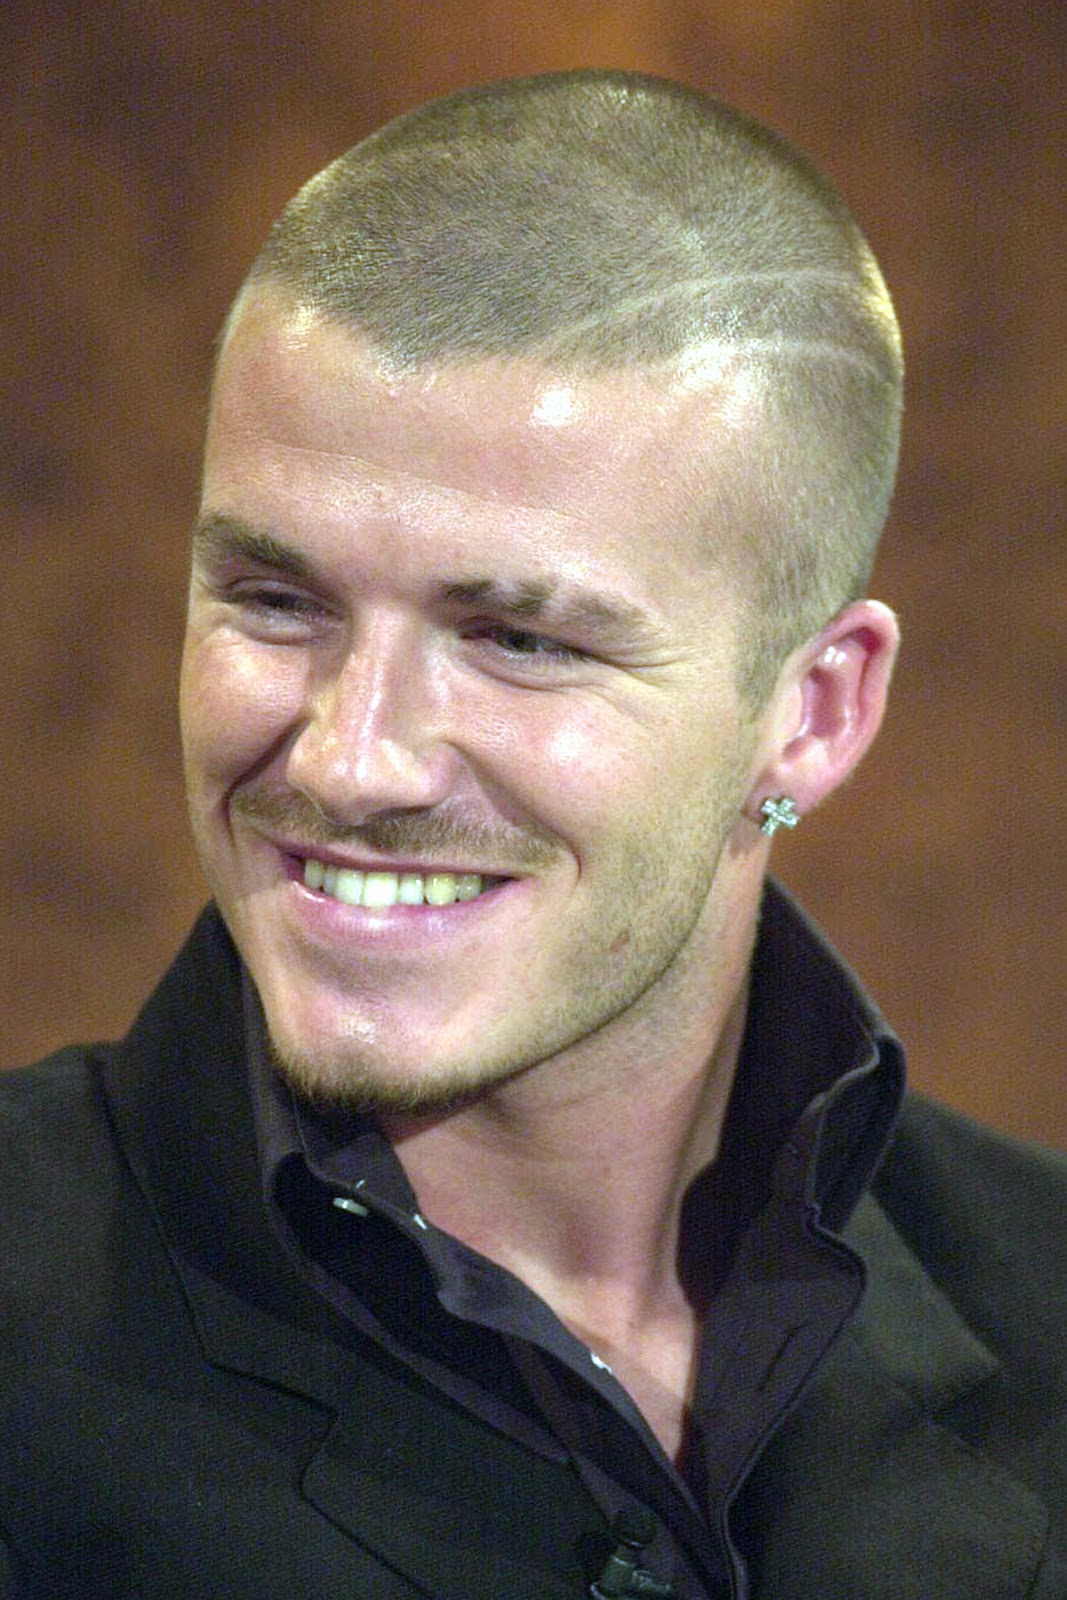 The long and short of celebrity hairstyles david beckham hairstyles 2002 at the 2002 world cup in south korea and japan beckham sported a fauxhawk or fake mohawk it was simple enough to do letting his hair grow a voltagebd Images